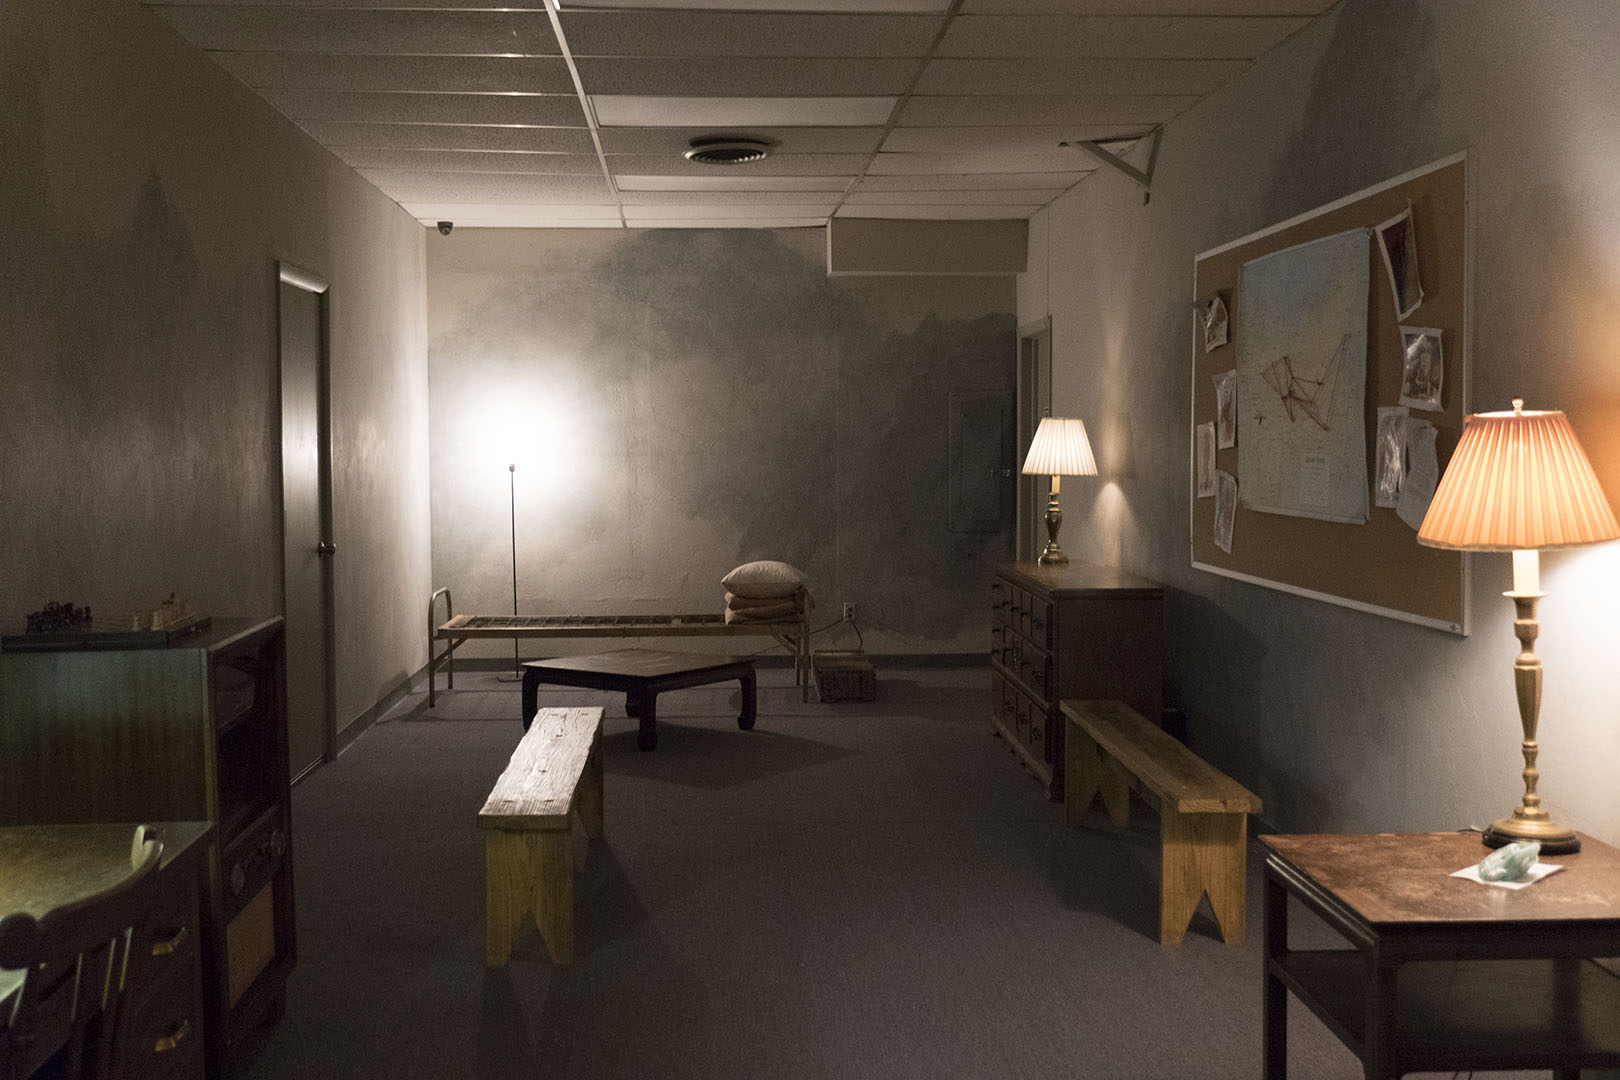 The Escape Room Independence